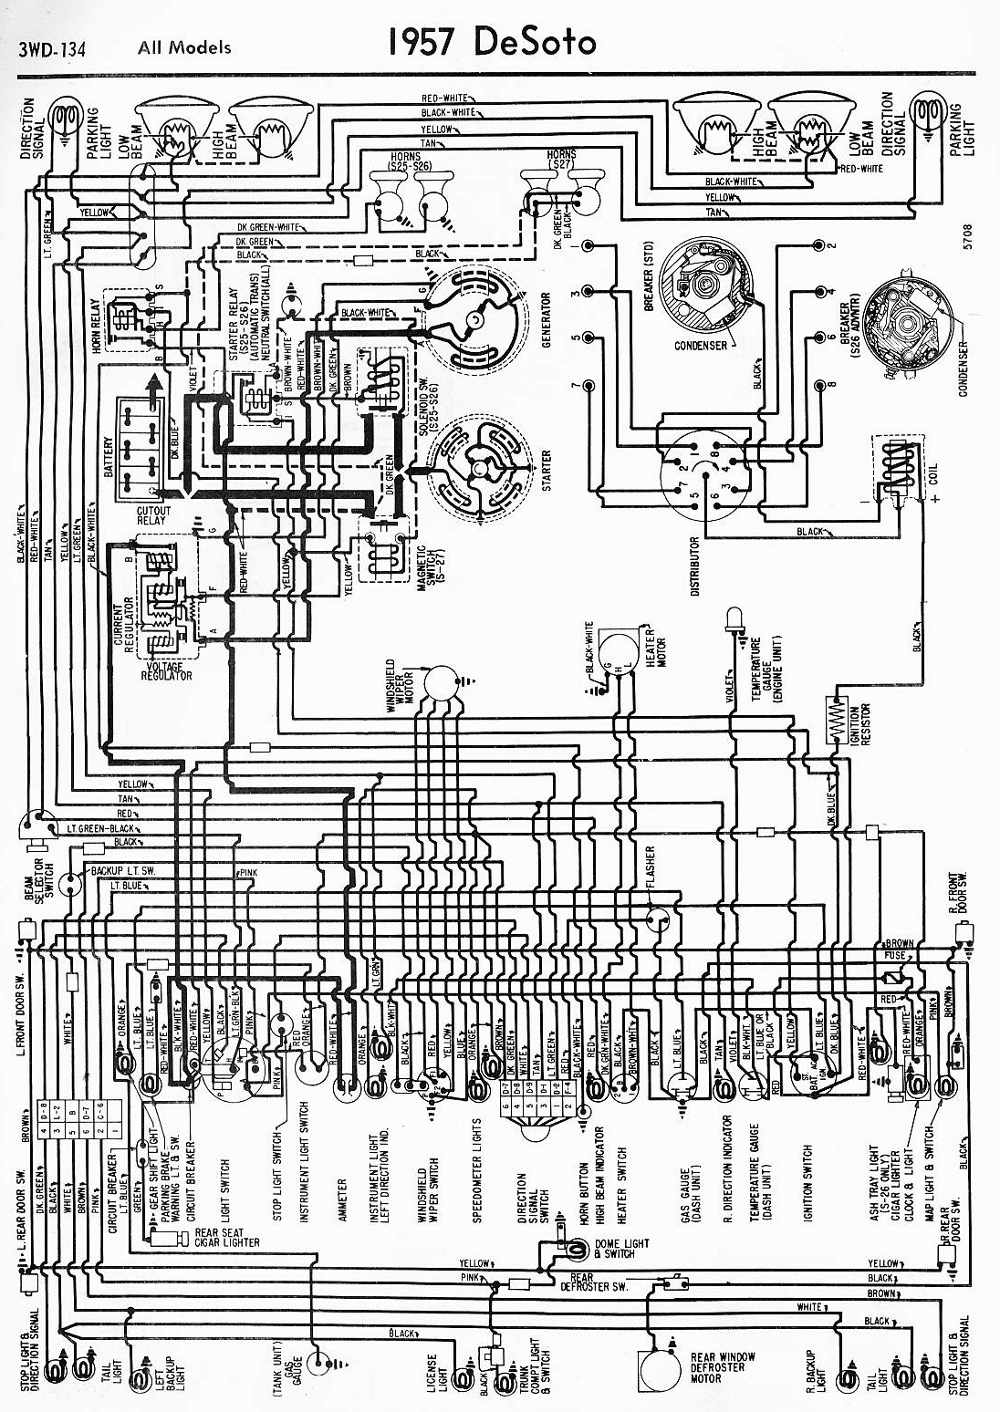 wiring-diagrams-of-1957-desoto-all-models Japanese Car Wiring Diagrams on